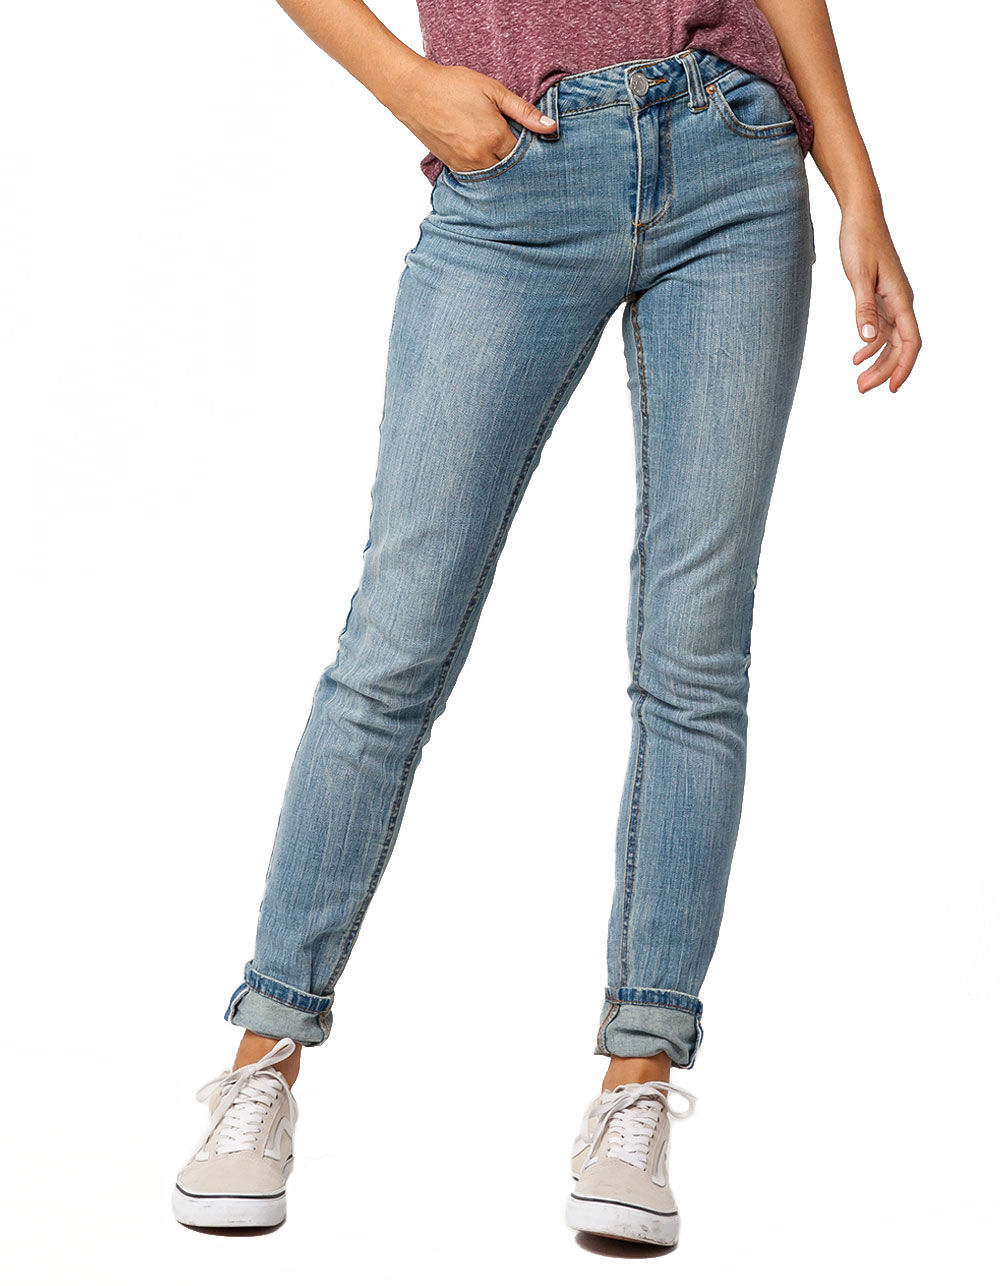 Image of ALMOST FAMOUS PREMIUM CUFFED SKINNY JEANS